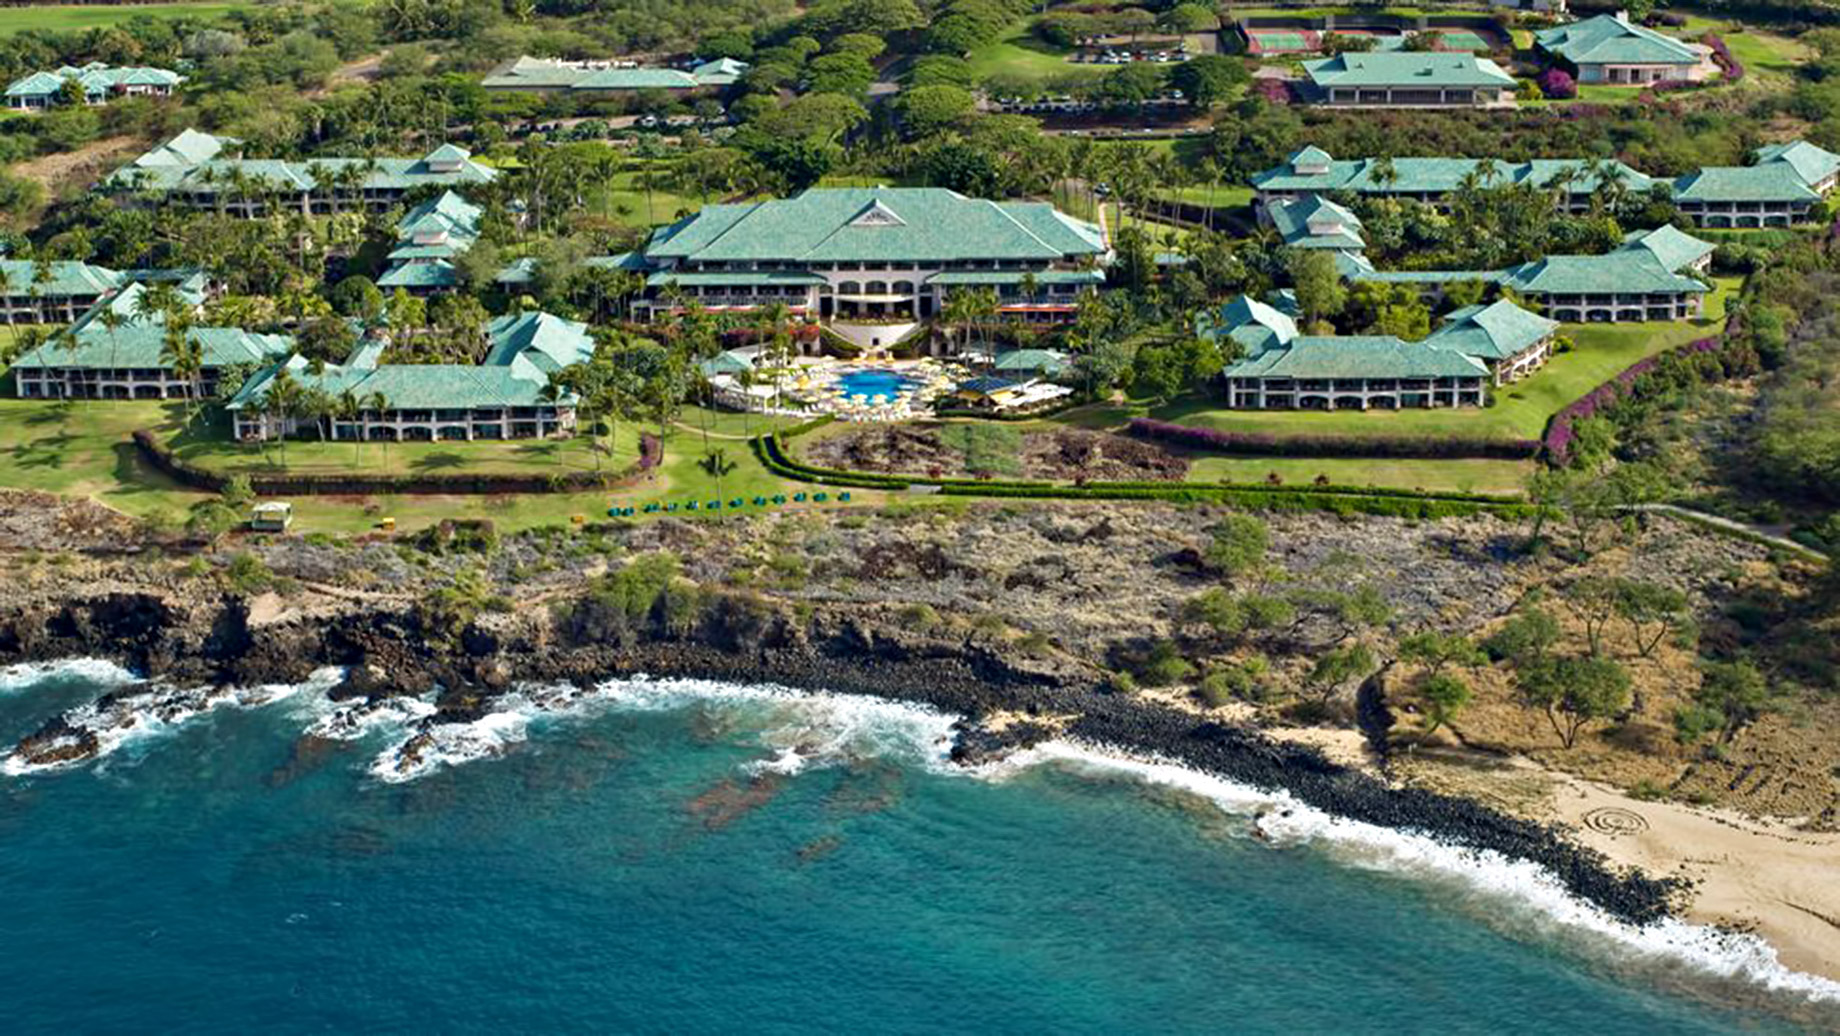 The Four Seasons Resort at Lanai Hawaii – Lanai – The Most Expensive Private Island Real Estate Transaction in History